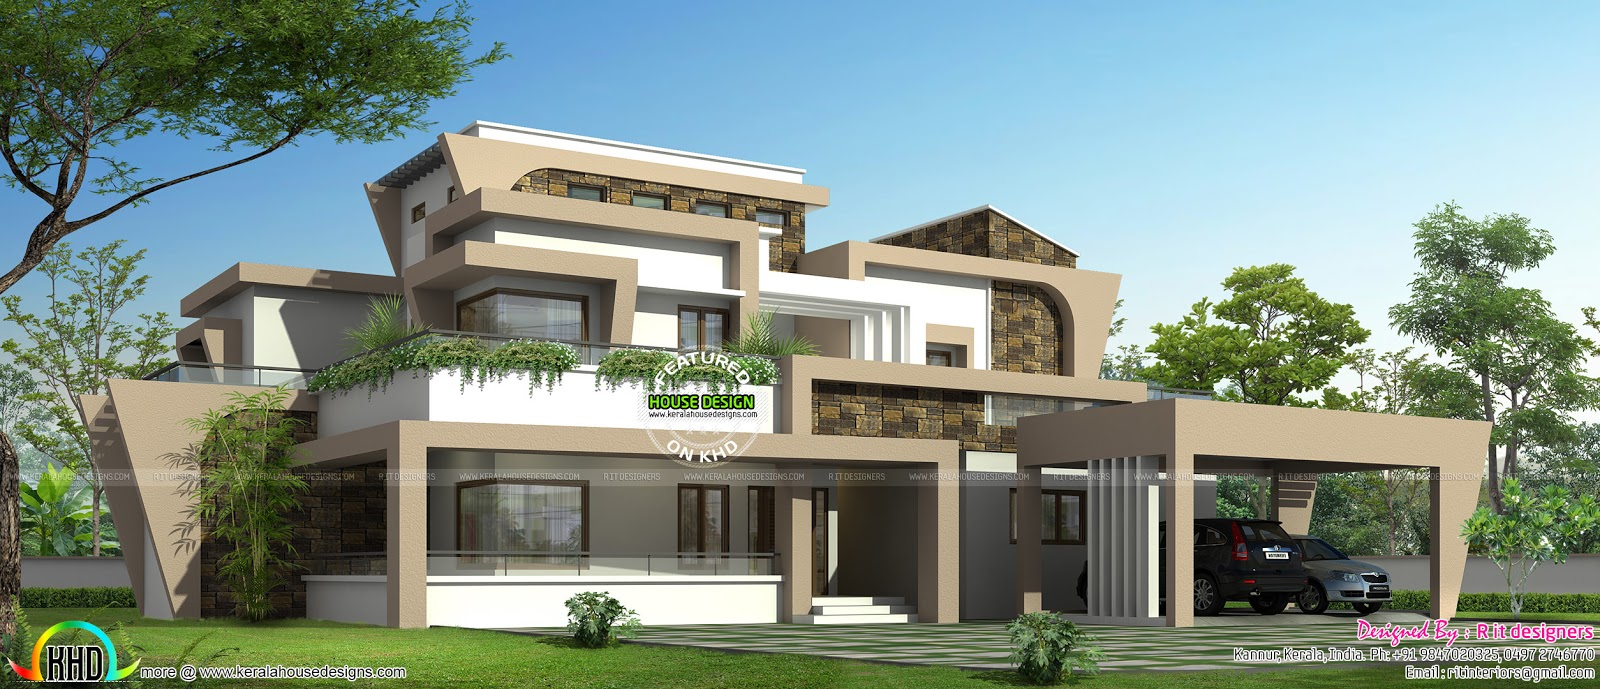 Unique Modern Home Design In Kerala Kerala Home Design